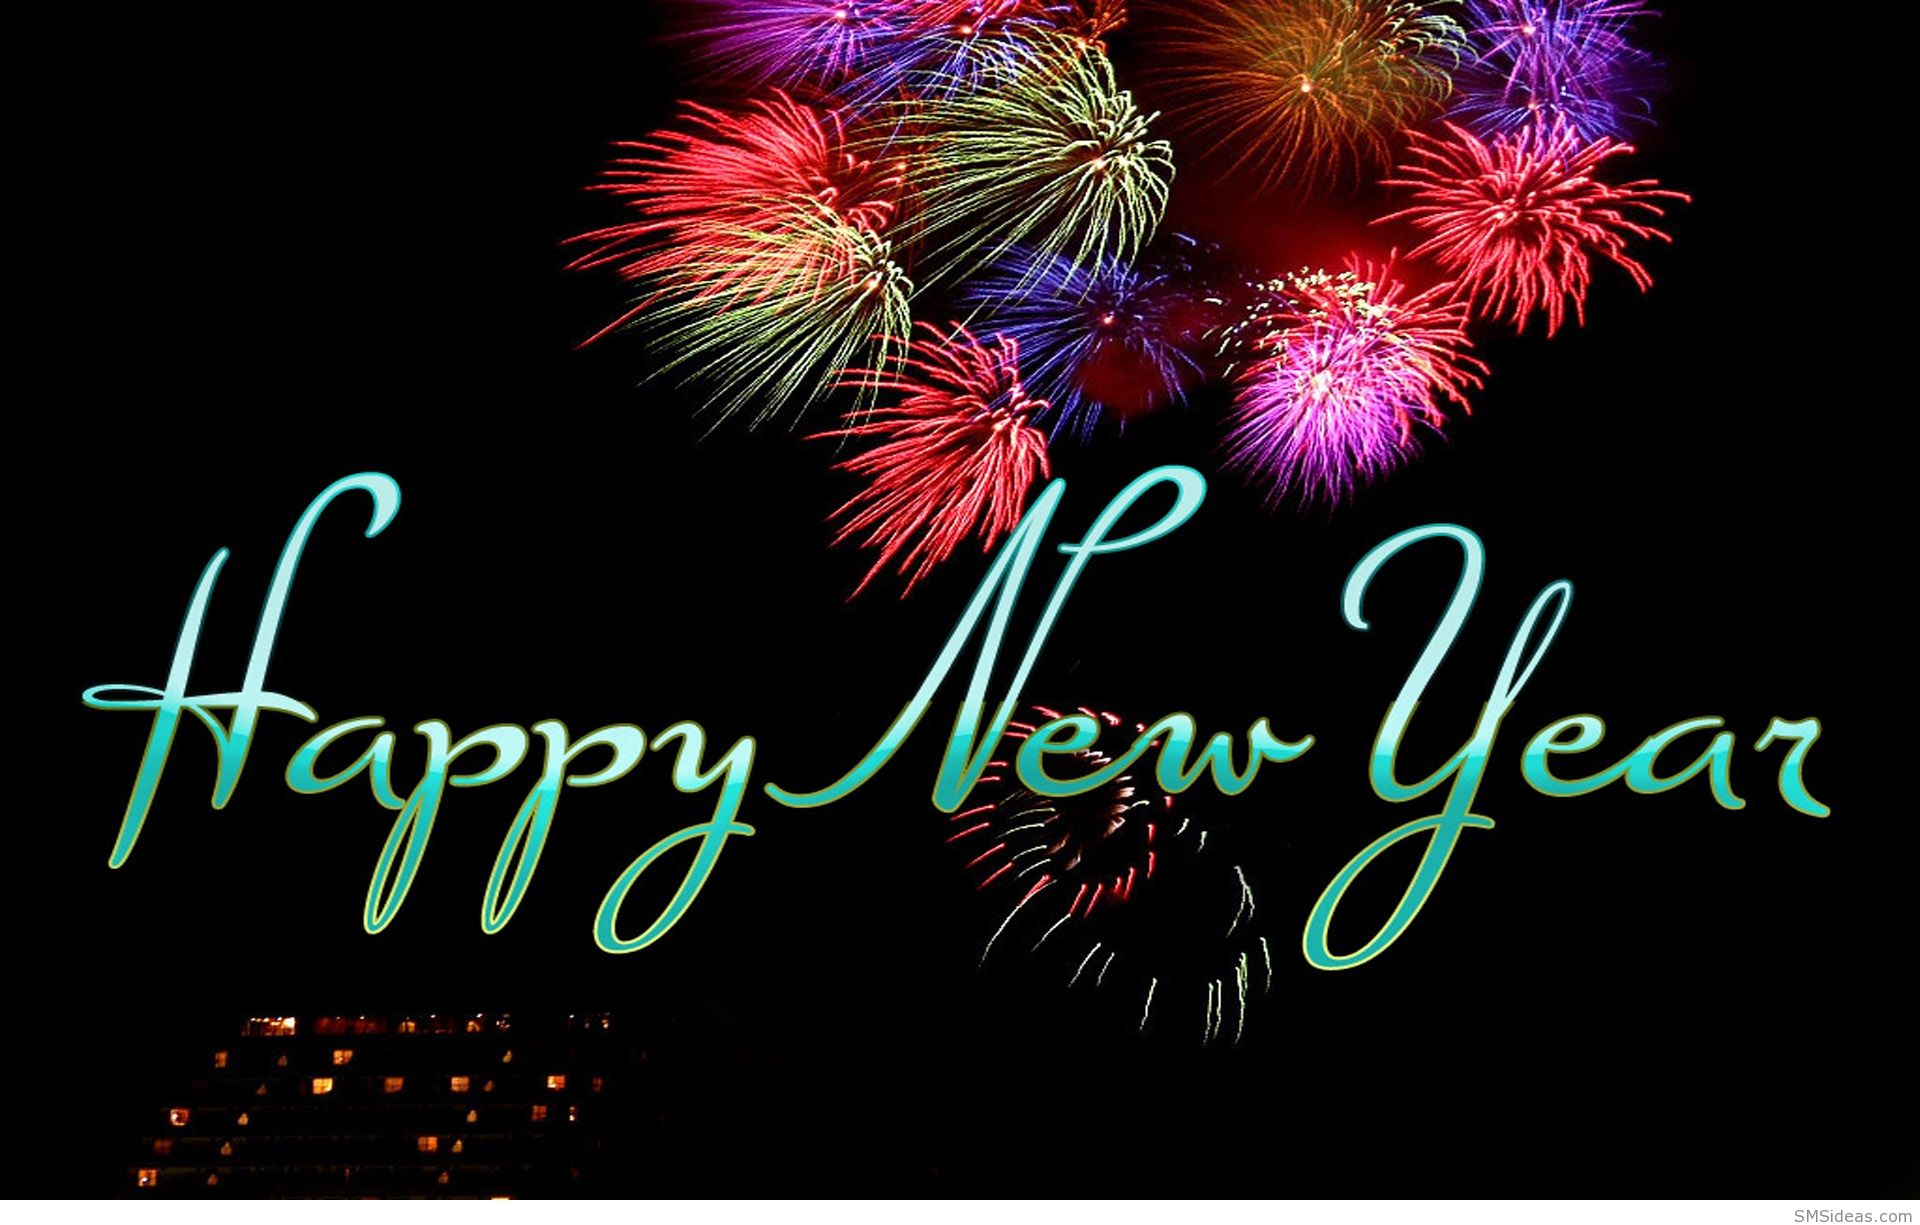 Bizarre traditions followed worldwide to celebrate new years happy new year 2015 poems poetry in english hindi marathi kristyandbryce Gallery